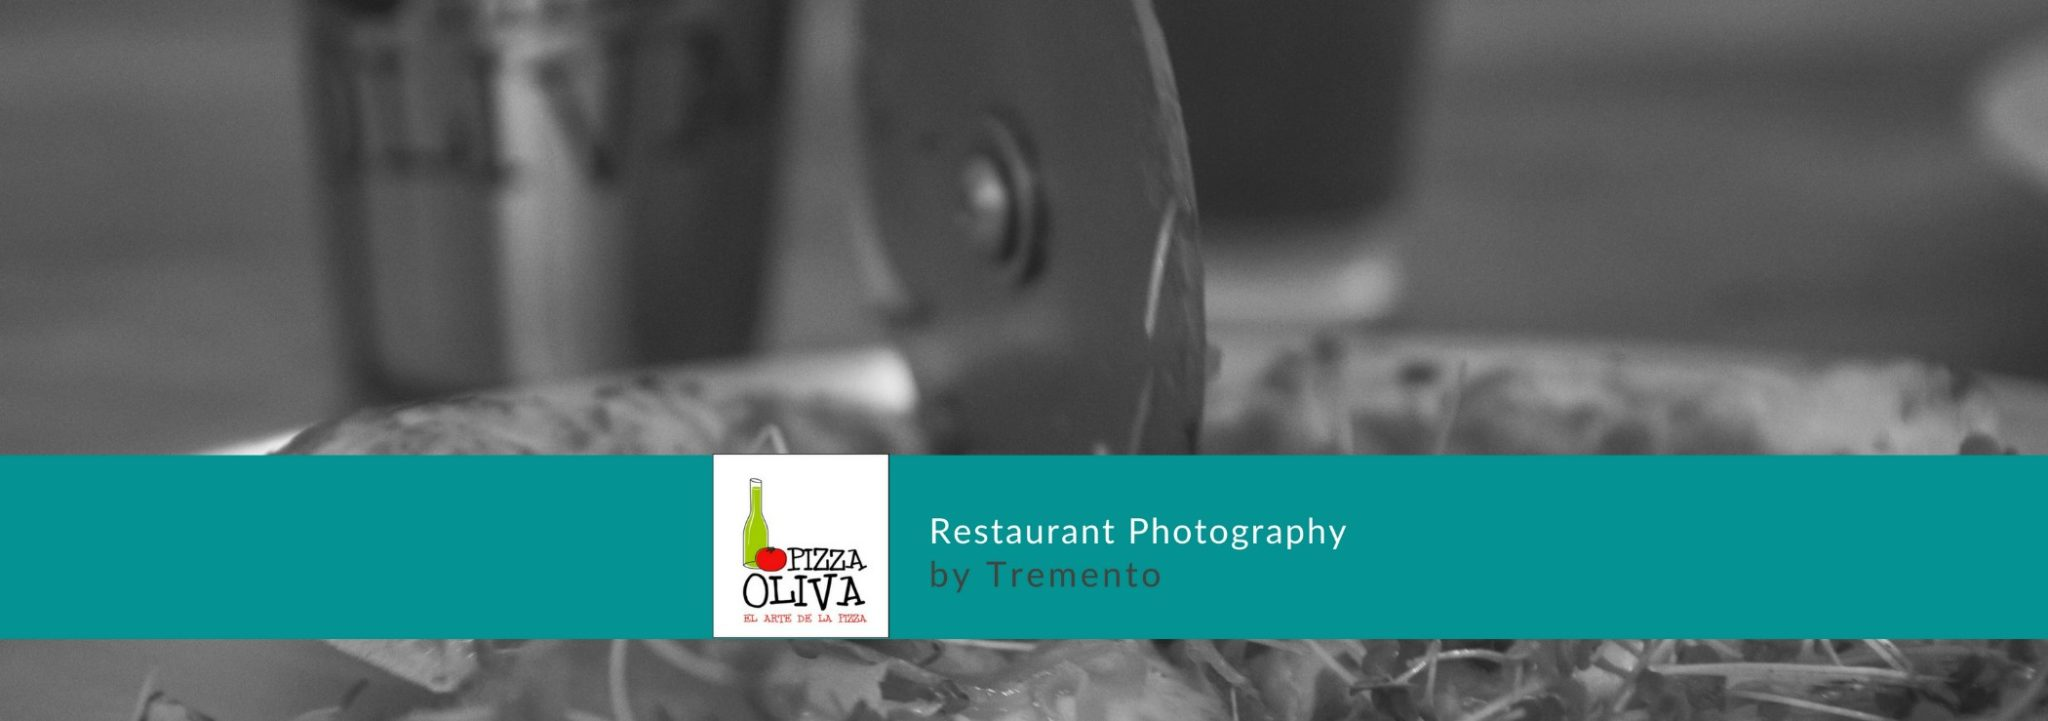 Tremento Portfolio Restaurant Photography Pizza Oliva